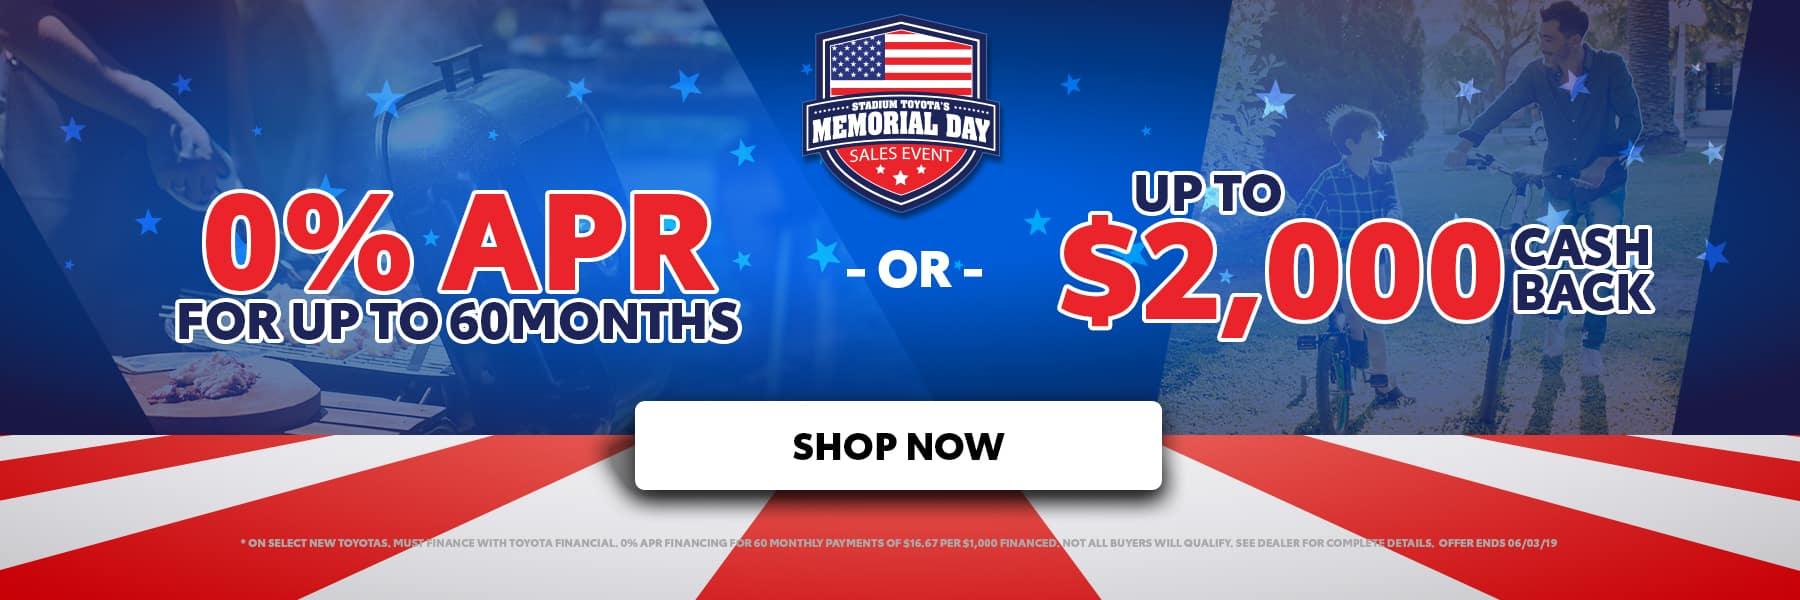 Memorial Day Special Offer